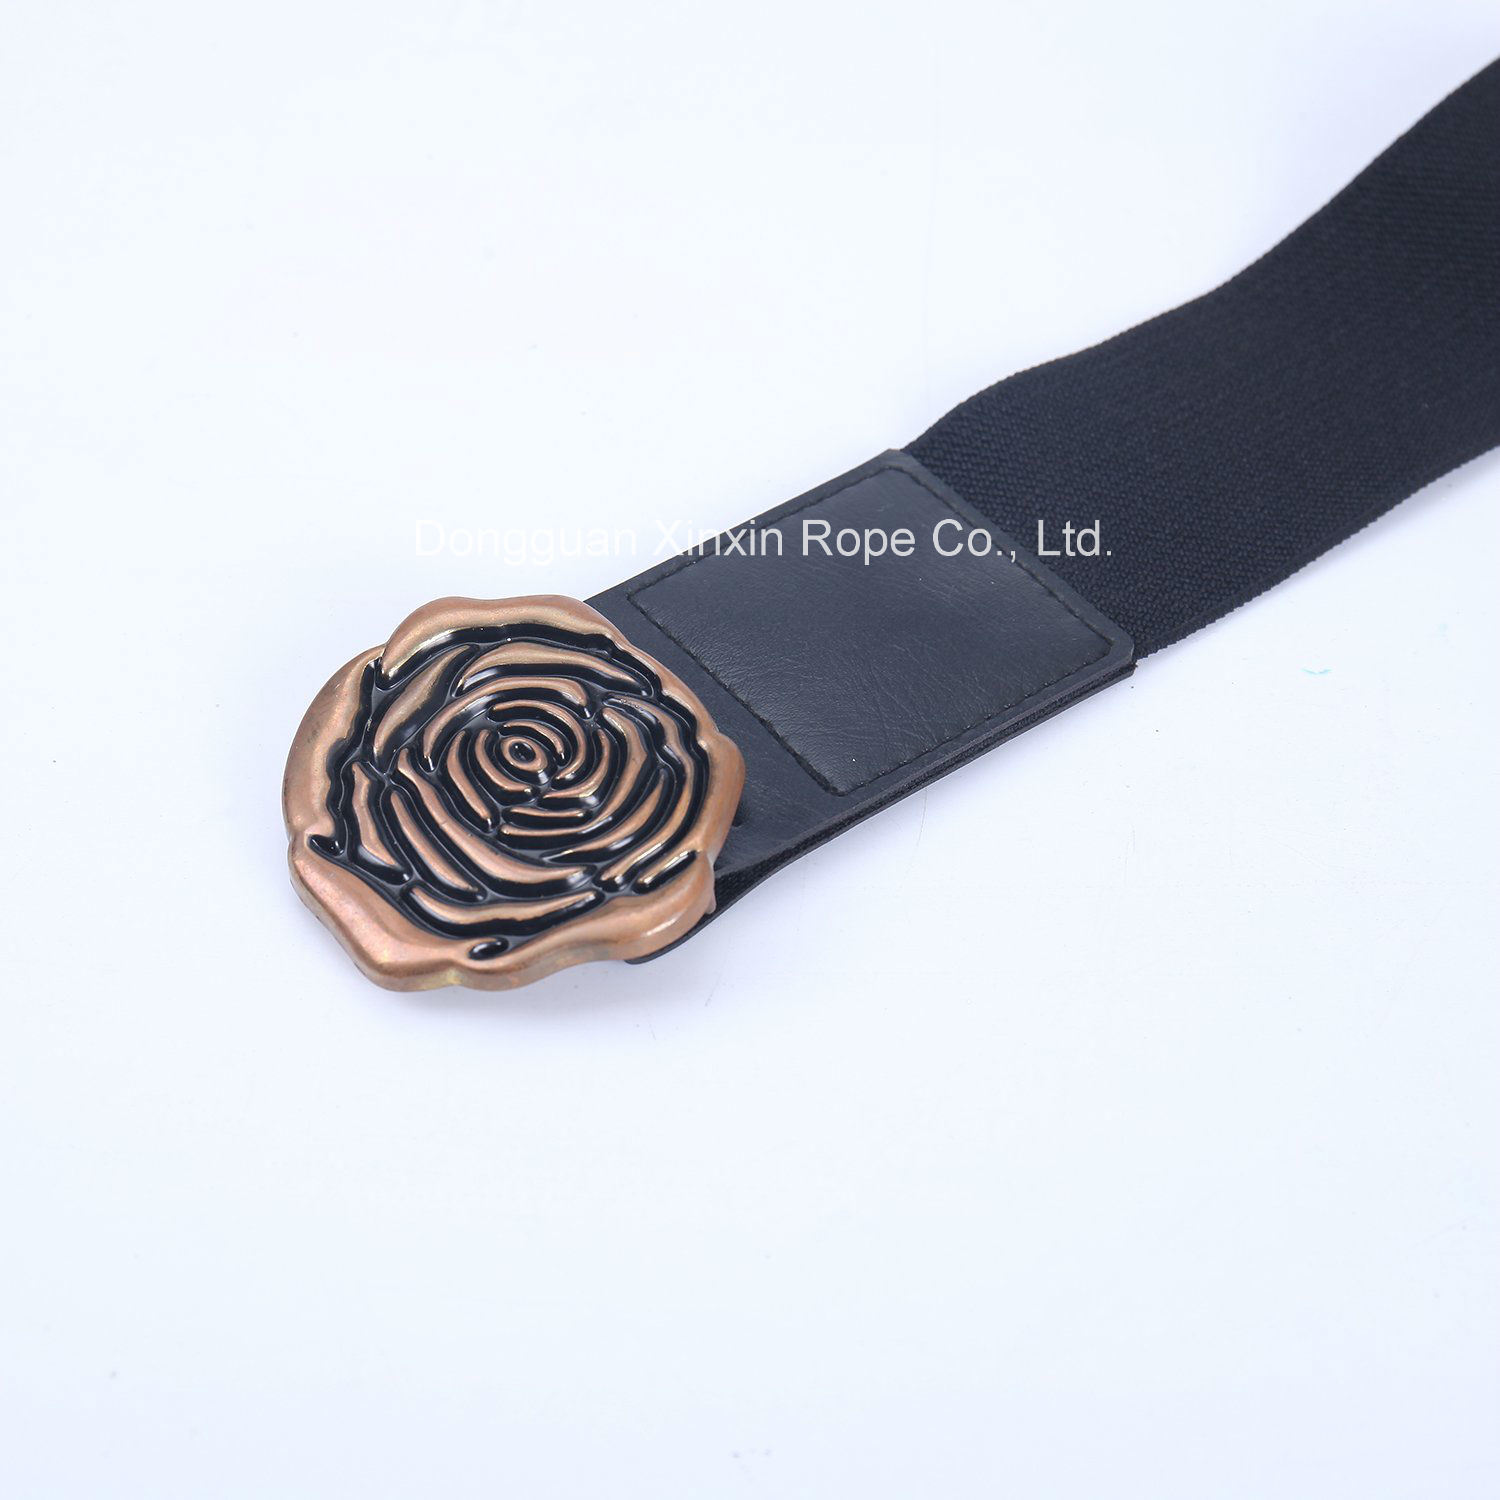 Rose Pin Buckle Spandex Fashion Clothes Ornament PU Leather Belt